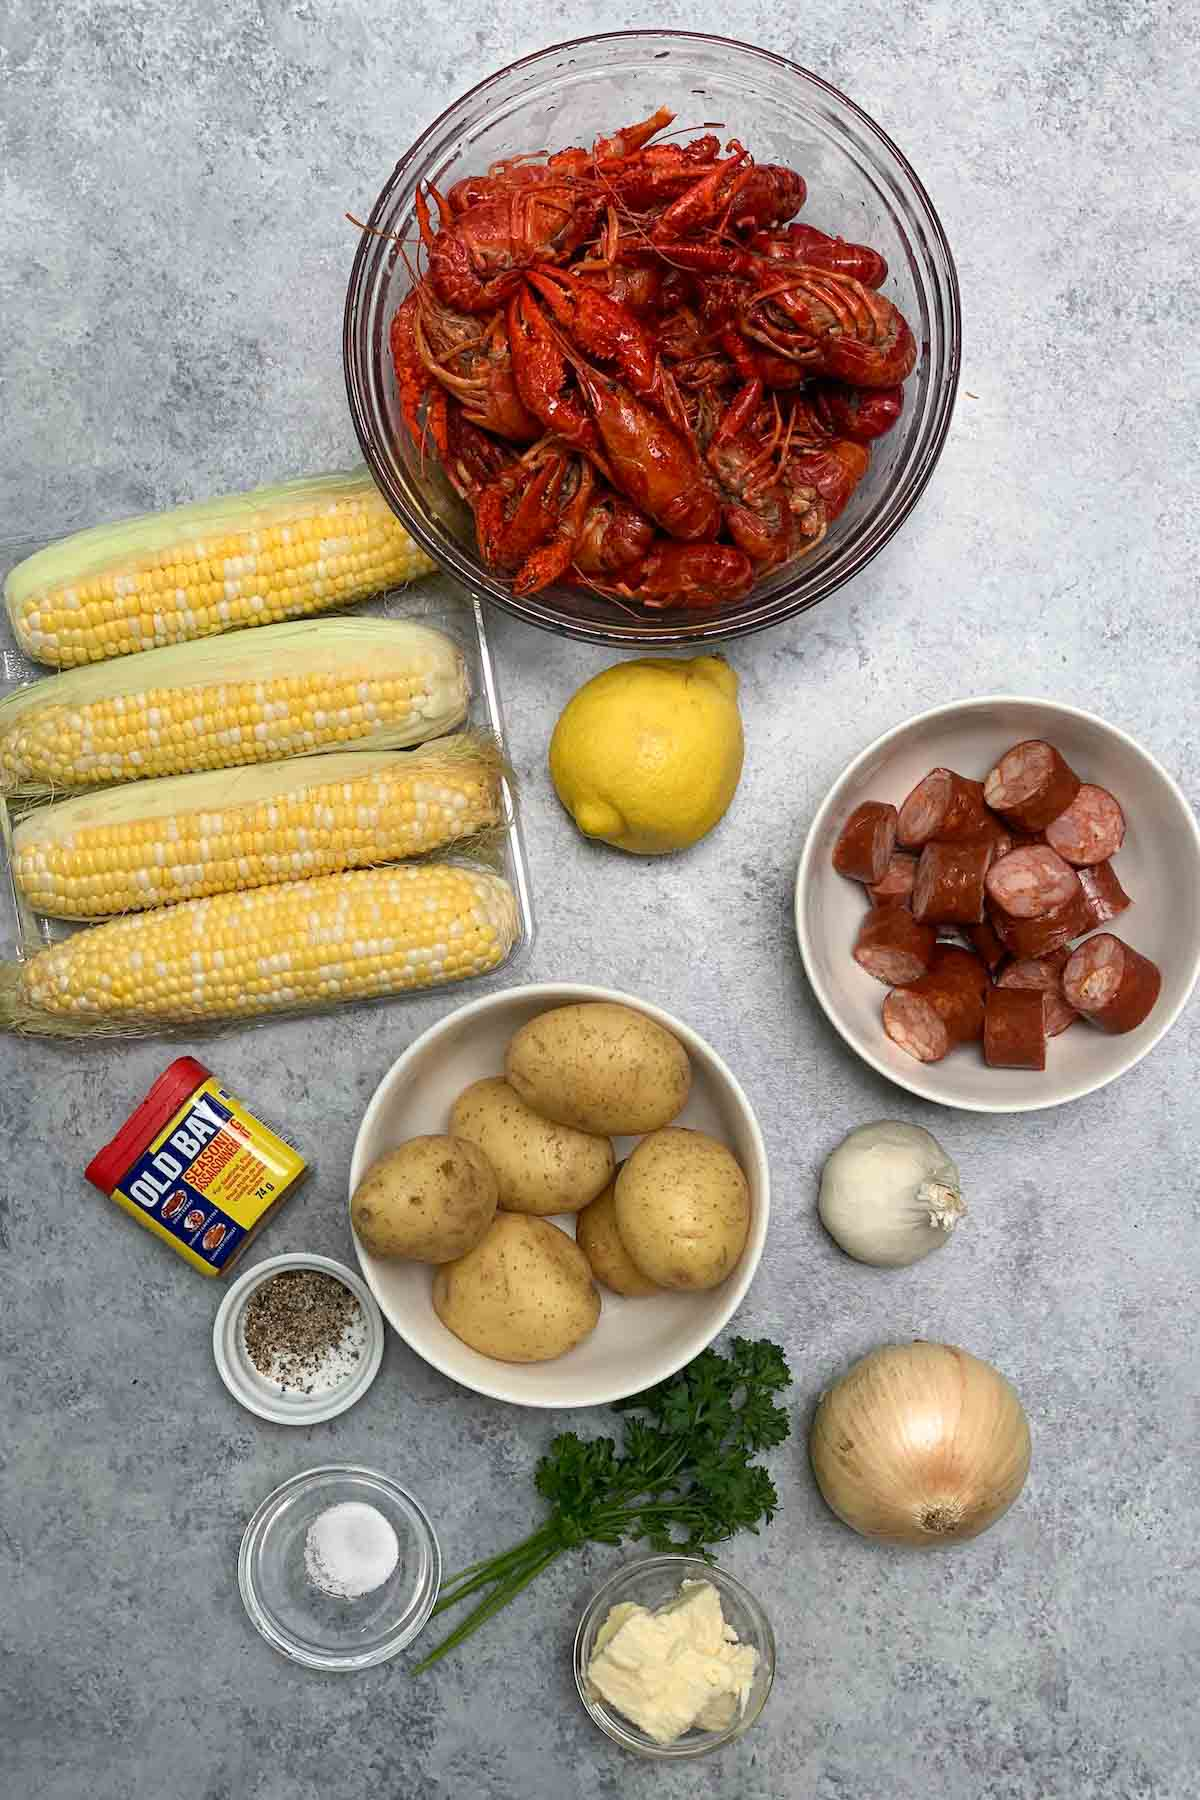 Crawfish Boil ingredients on the counter.